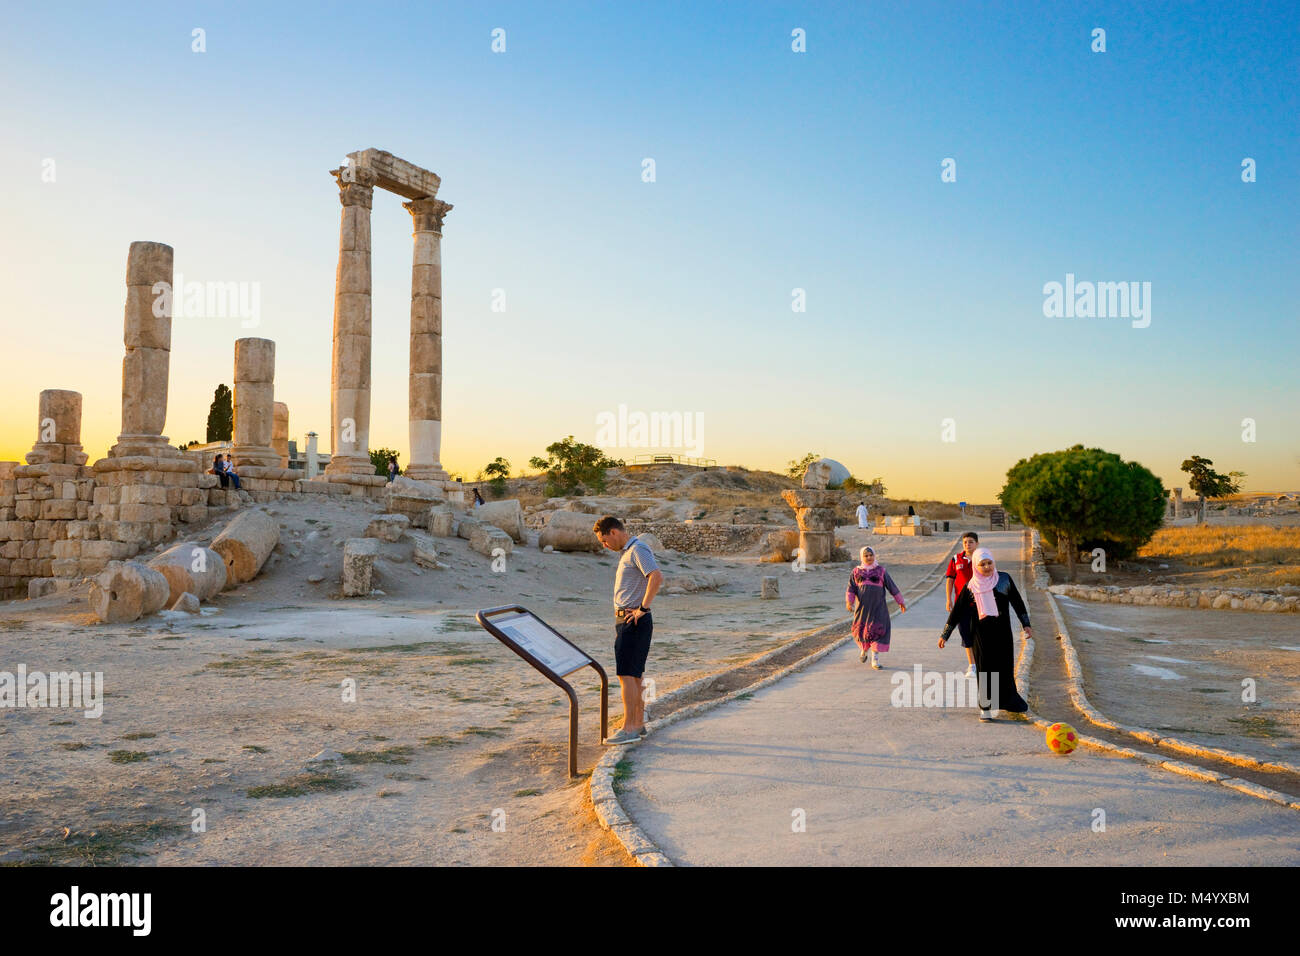 Man reading information sign and kids playing with soccer ball at Temple of Hercules in Amman Citadel, Amman, Jordan - Stock Image